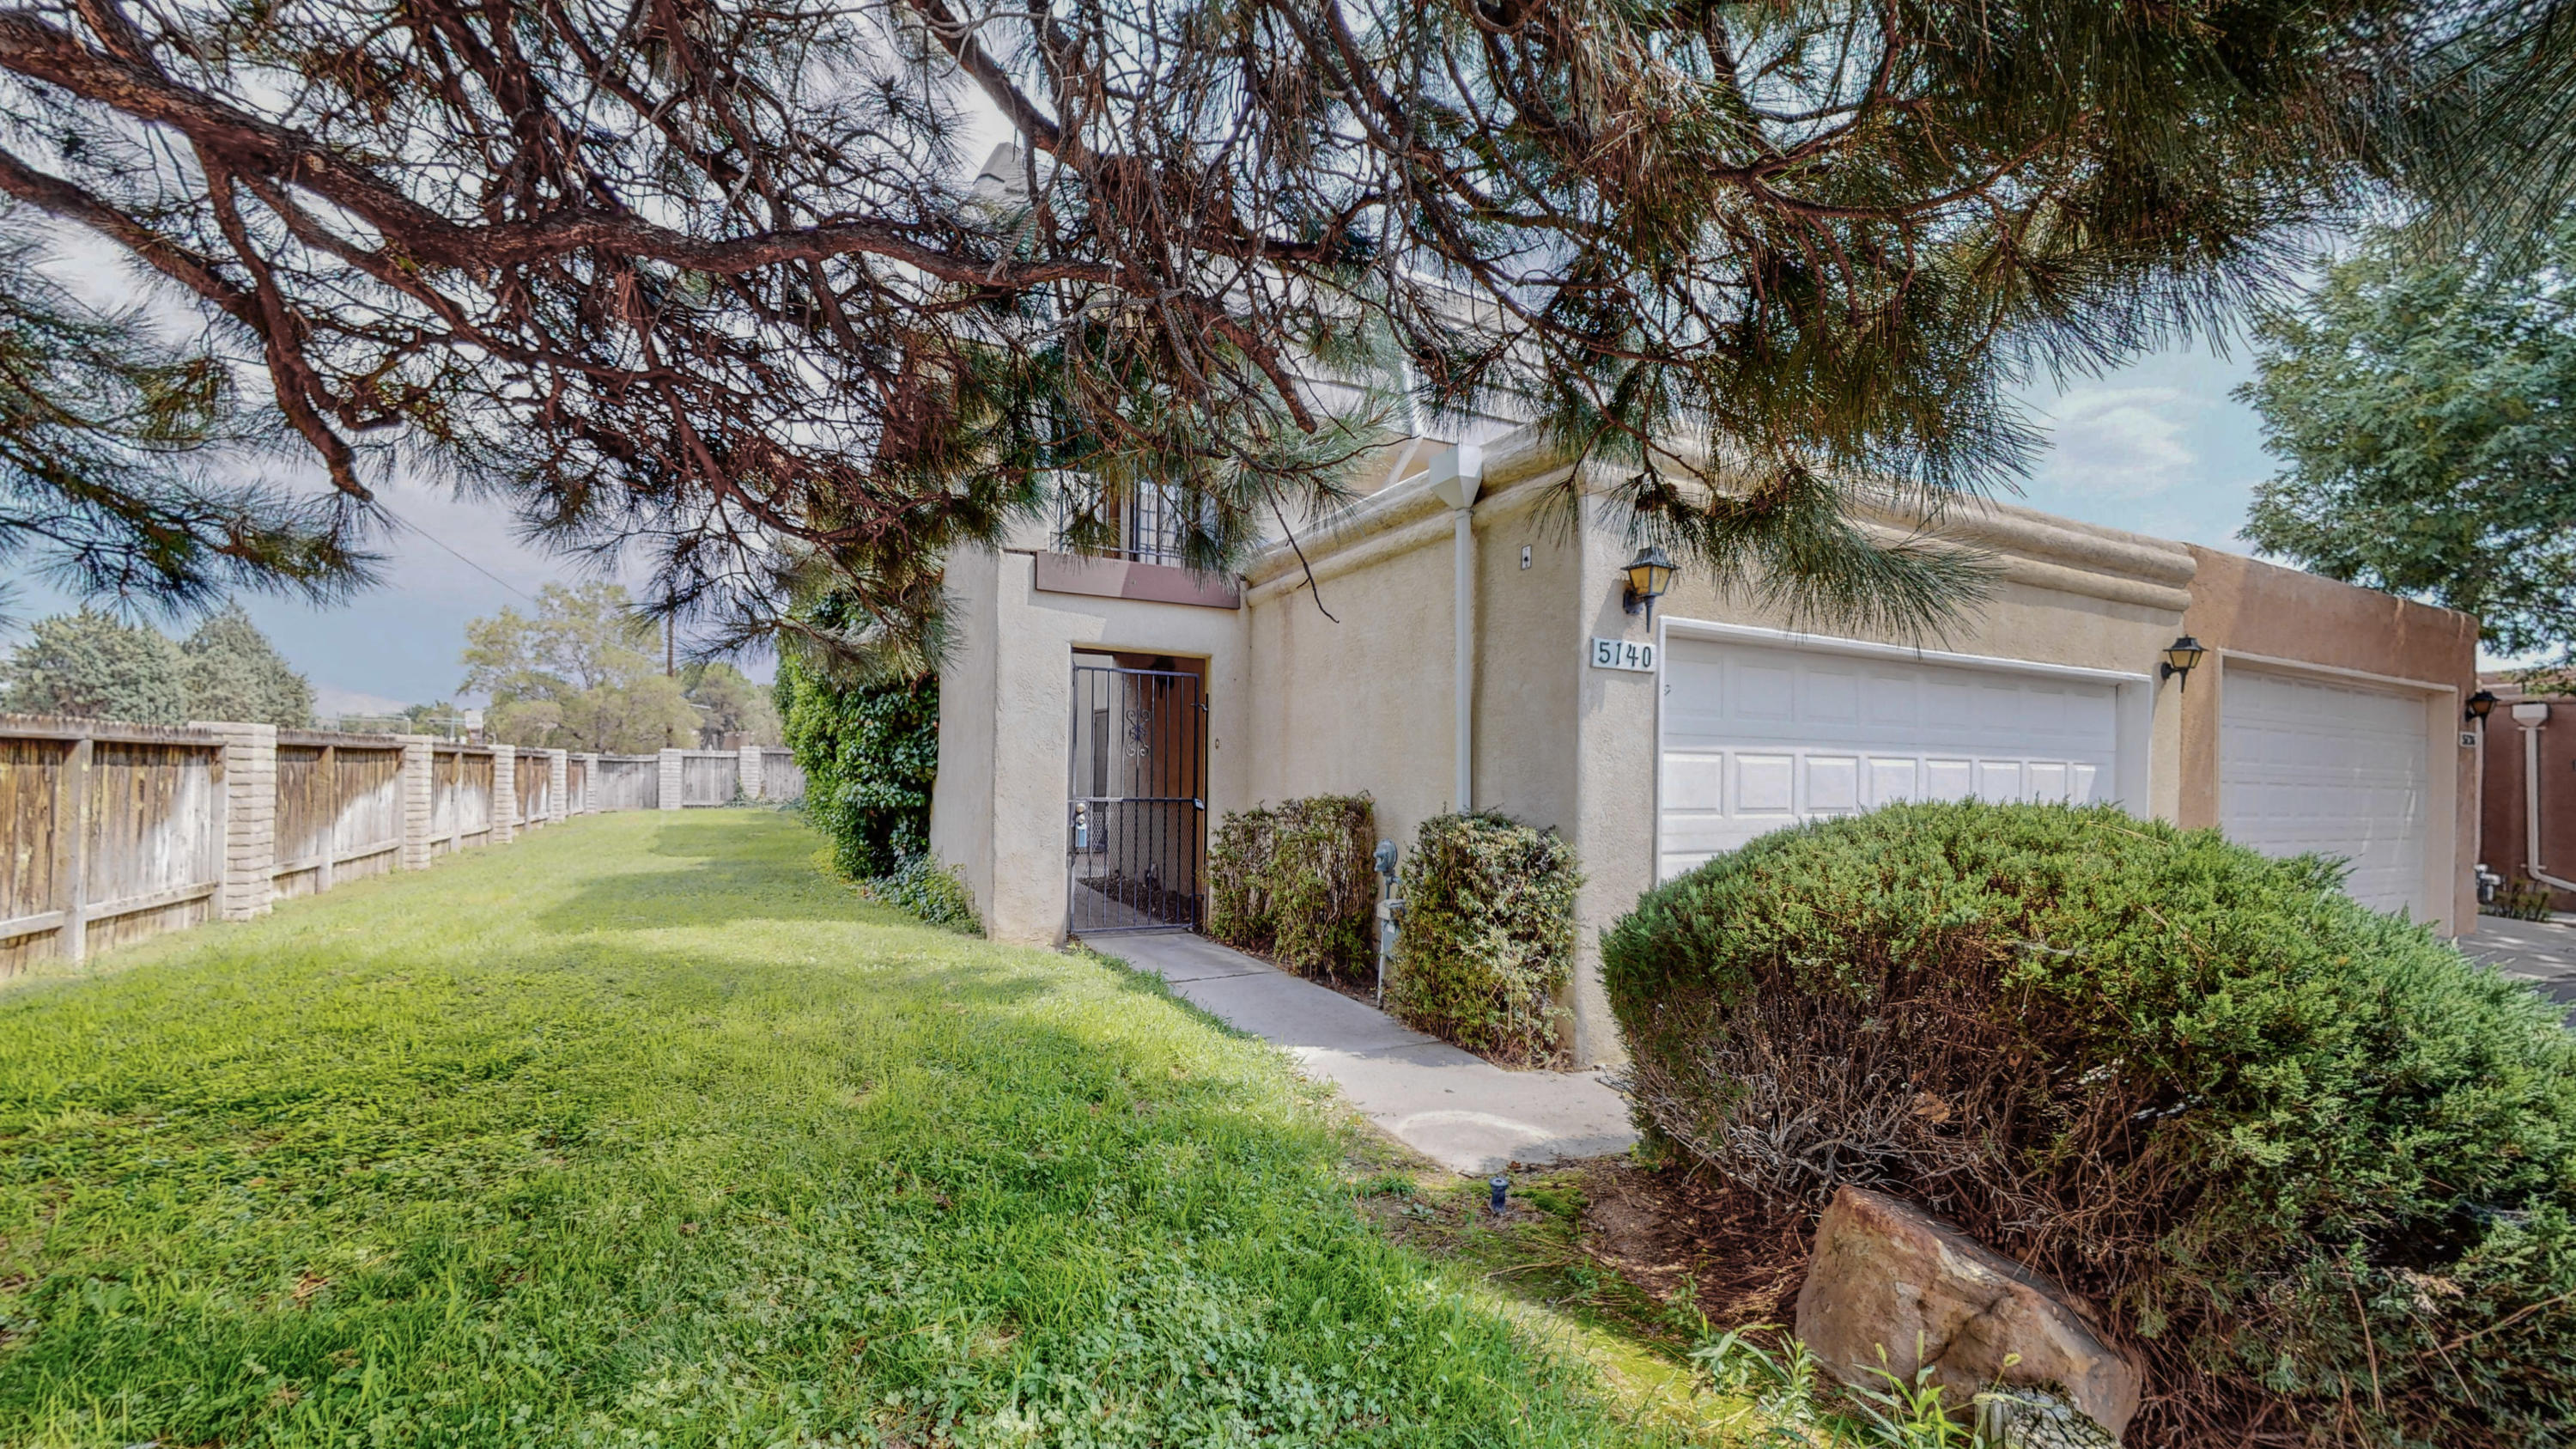 This Townhome next to Arroyo del Oso golf course is calling you home!  With Community amenities that include a pool, tennis courts, park, clubhouse and a Home Owners Association that covers your front landscaping, roof and stucco, Who could ask for more! Let your dreams move you!